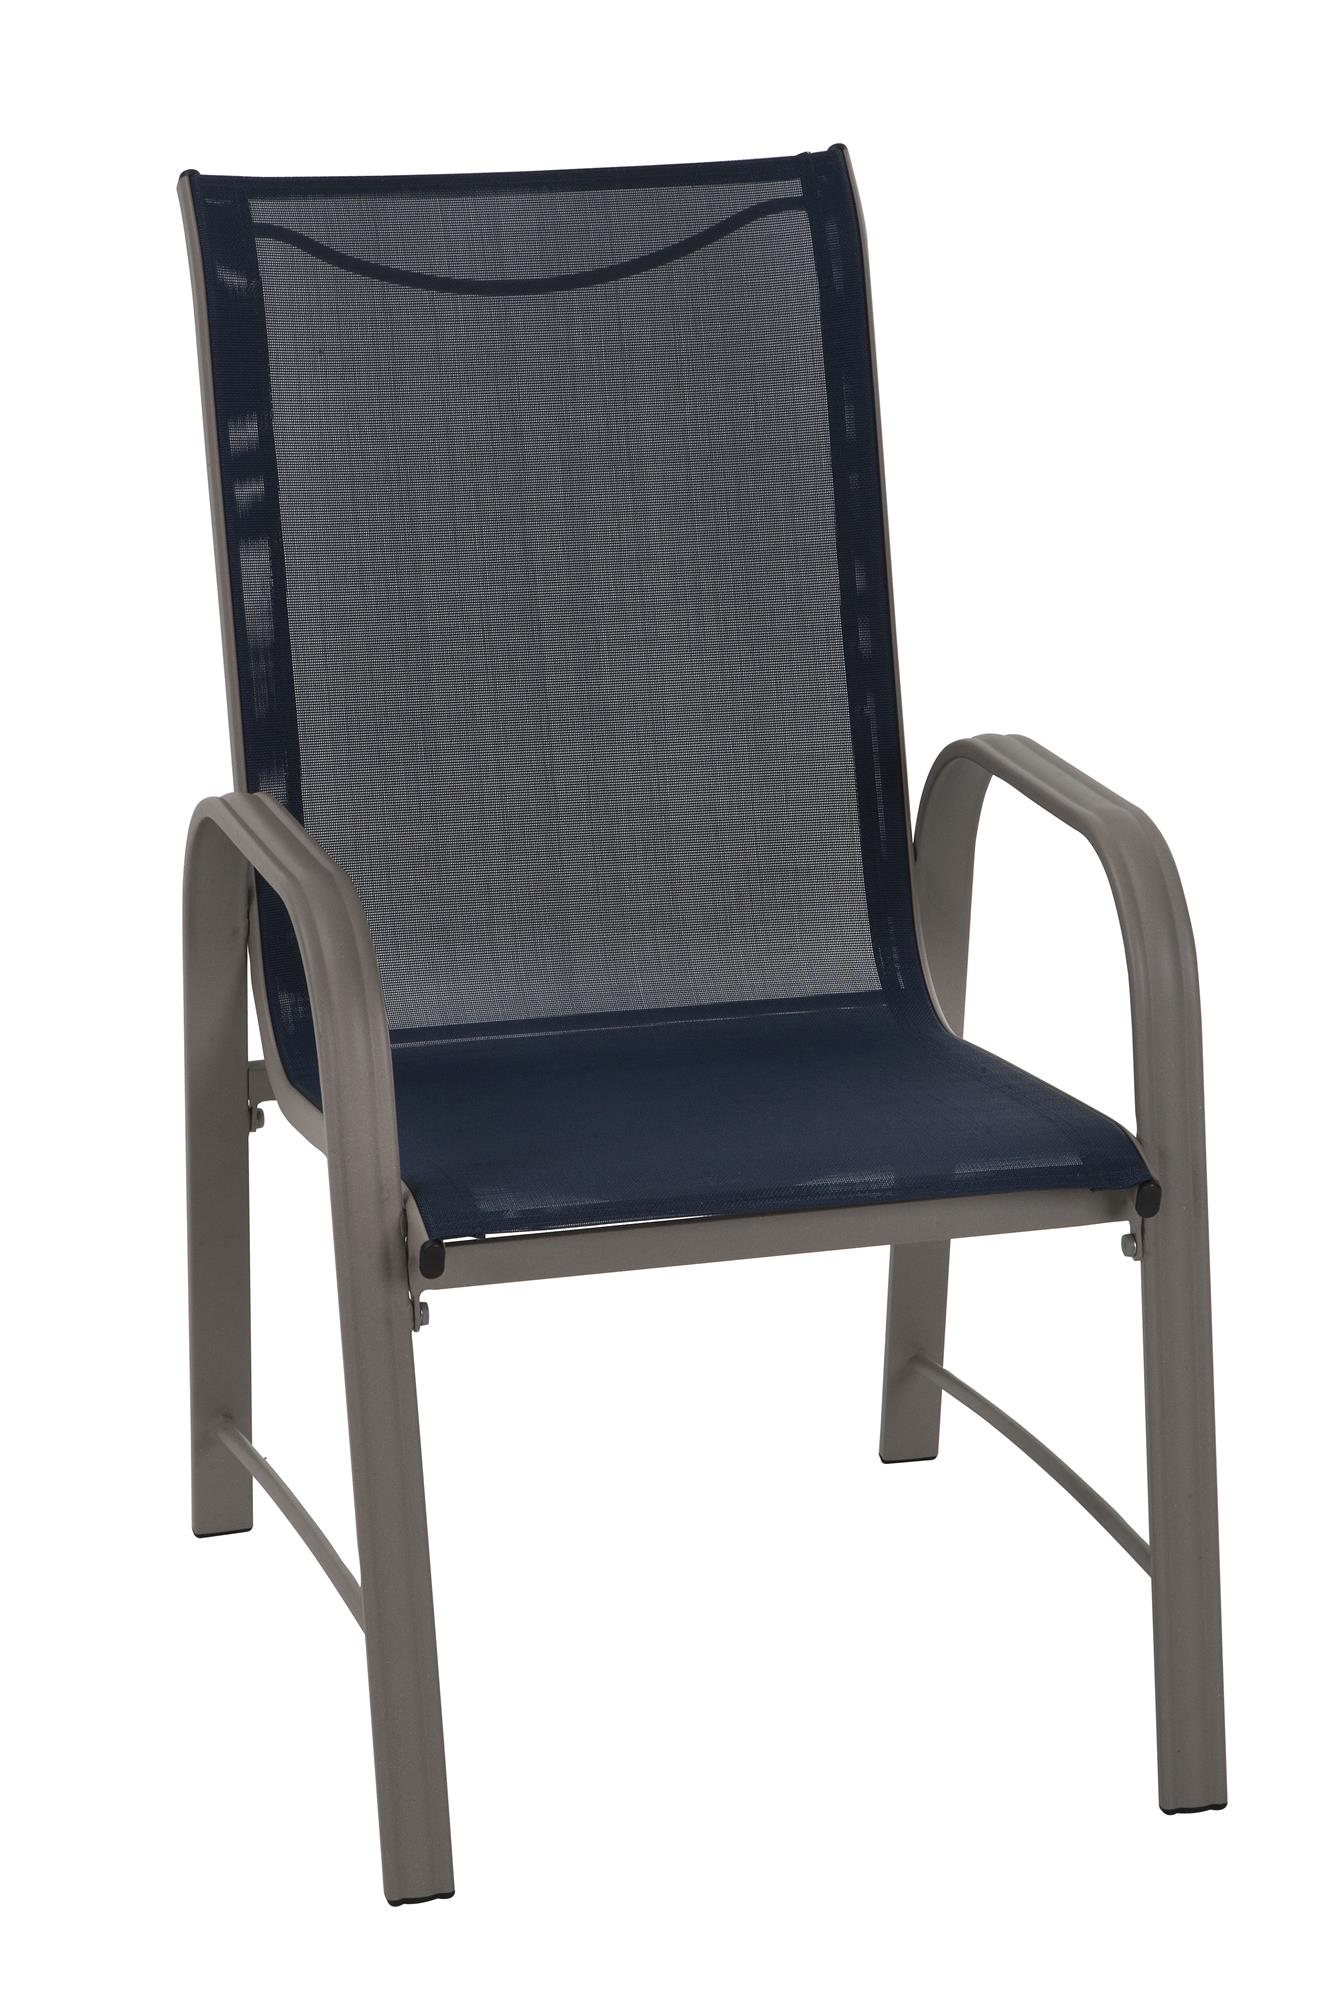 COSCO Outdoor Living Paloma Steel Patio Dining Chairs Navy Blue Sling Sand Steel Frame  sc 1 st  Walmart & COSCO Outdoor Living Paloma Steel Patio Dining Chairs Navy Blue ...